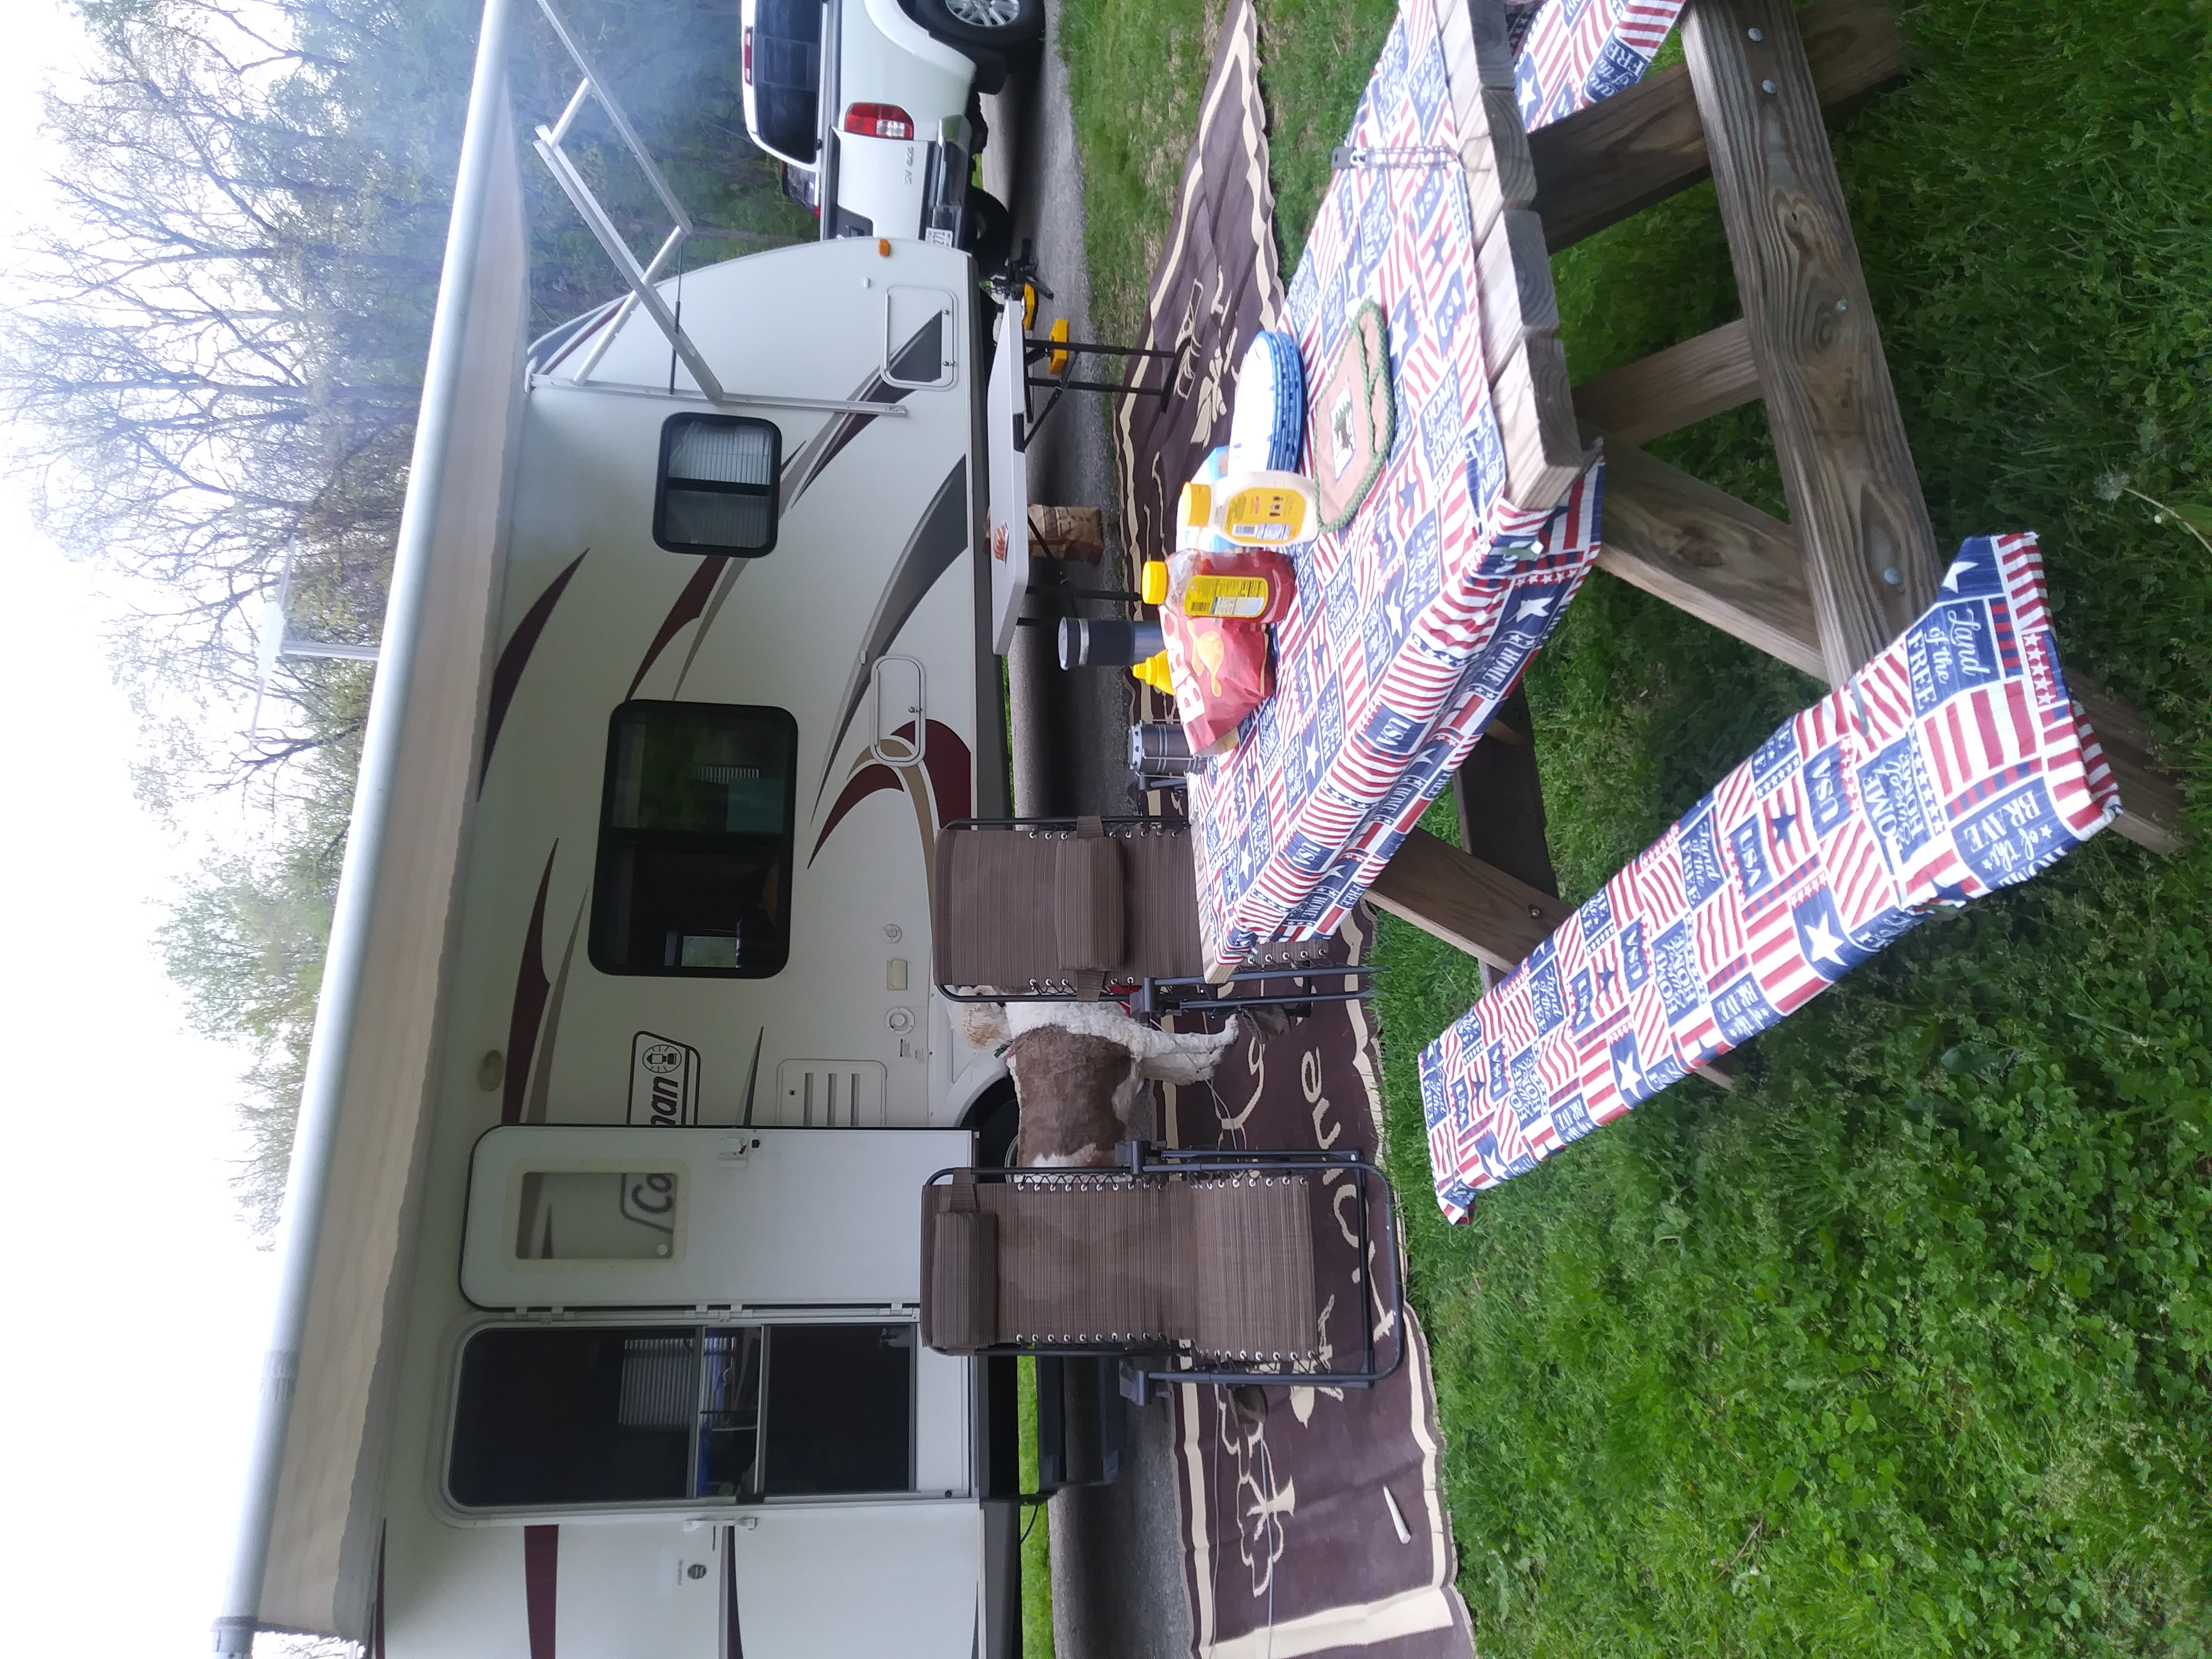 set up ready to enjoy the trip. 4 chairs, table cloths, table, rv mat. Dutchmen Coleman 2010